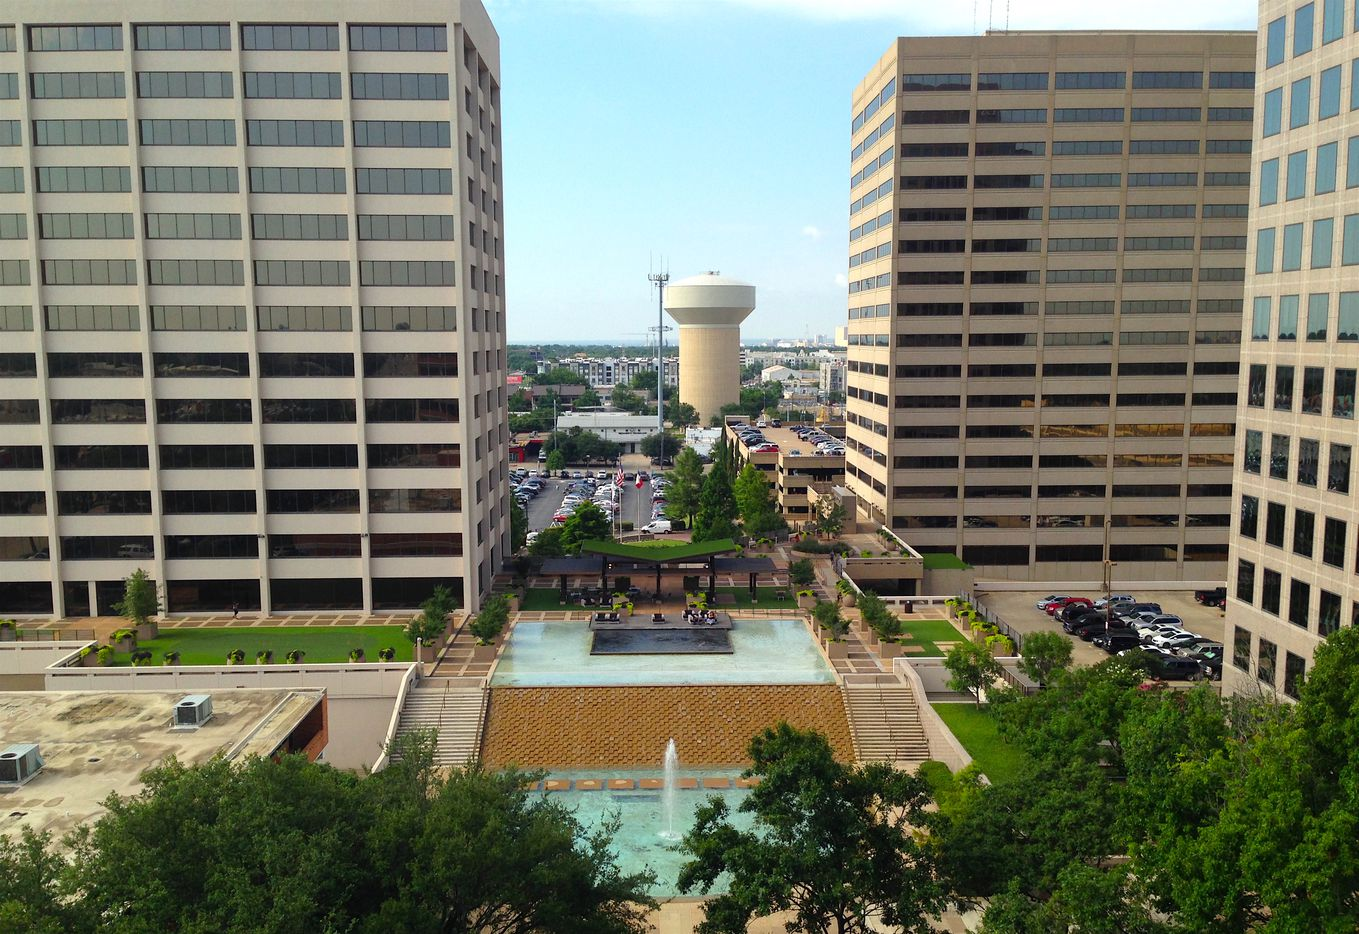 The fountain area between the Energy Square towers will be replaced with a new park and central drive.